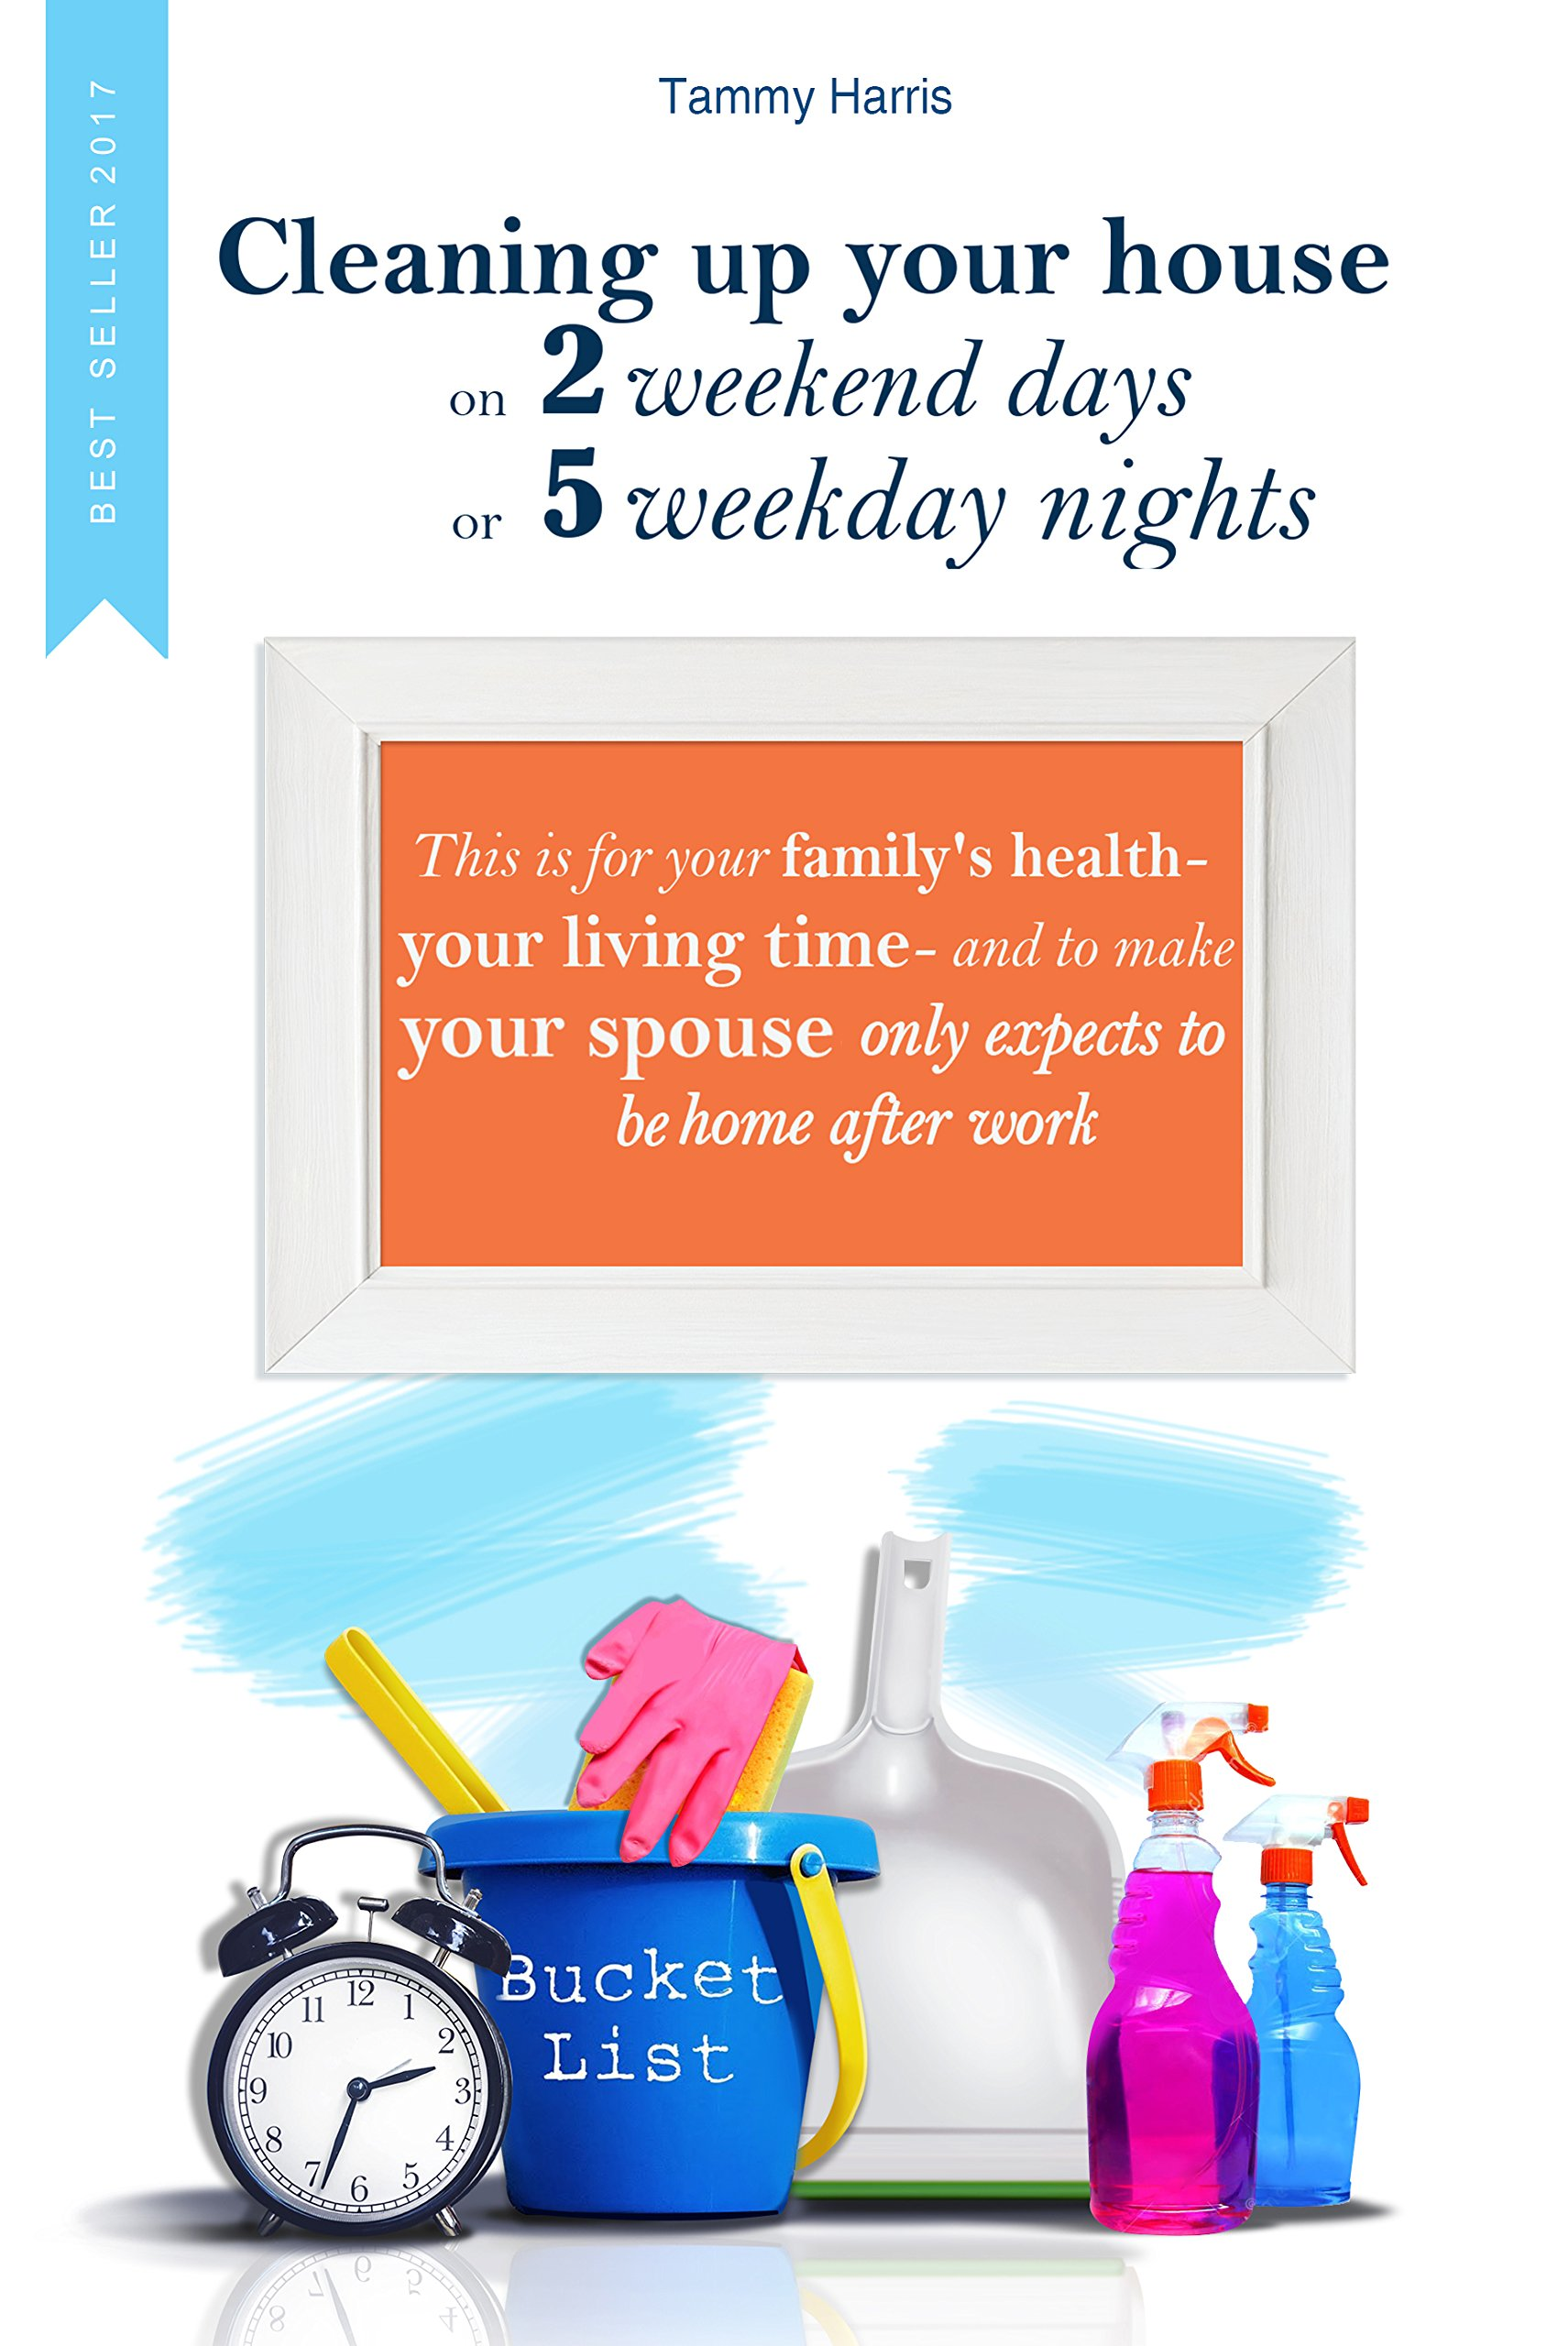 CLEANING UP YOUR HOUSE